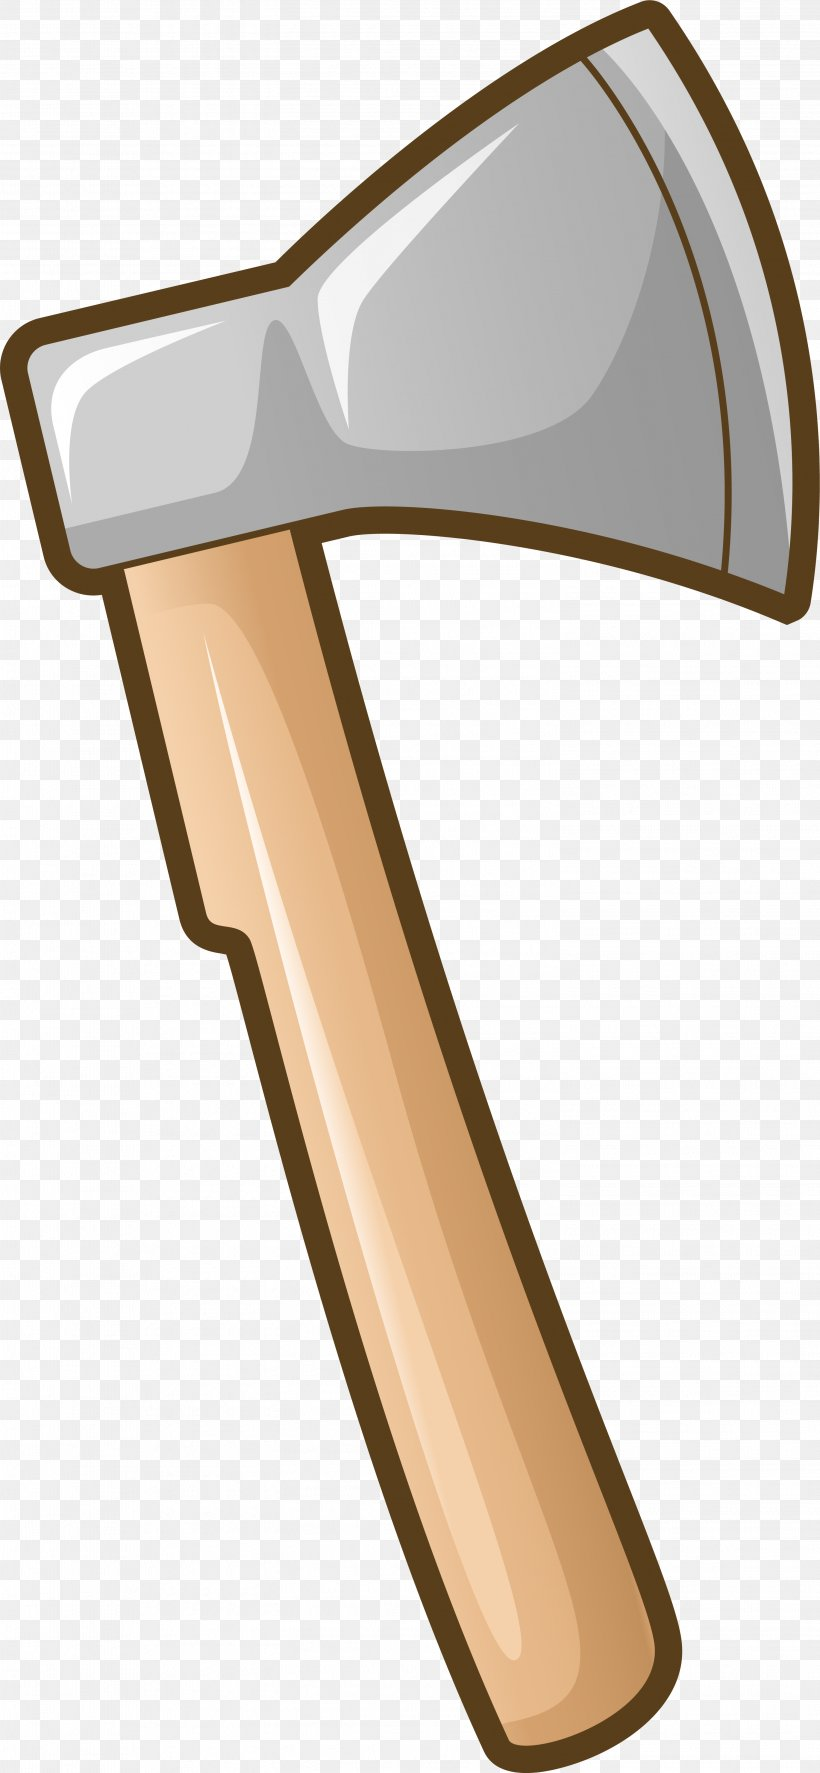 Axe Woodworking Tool, PNG, 3001x6492px, Axe, Carpenter, Tool, Wood, Woodworking Download Free